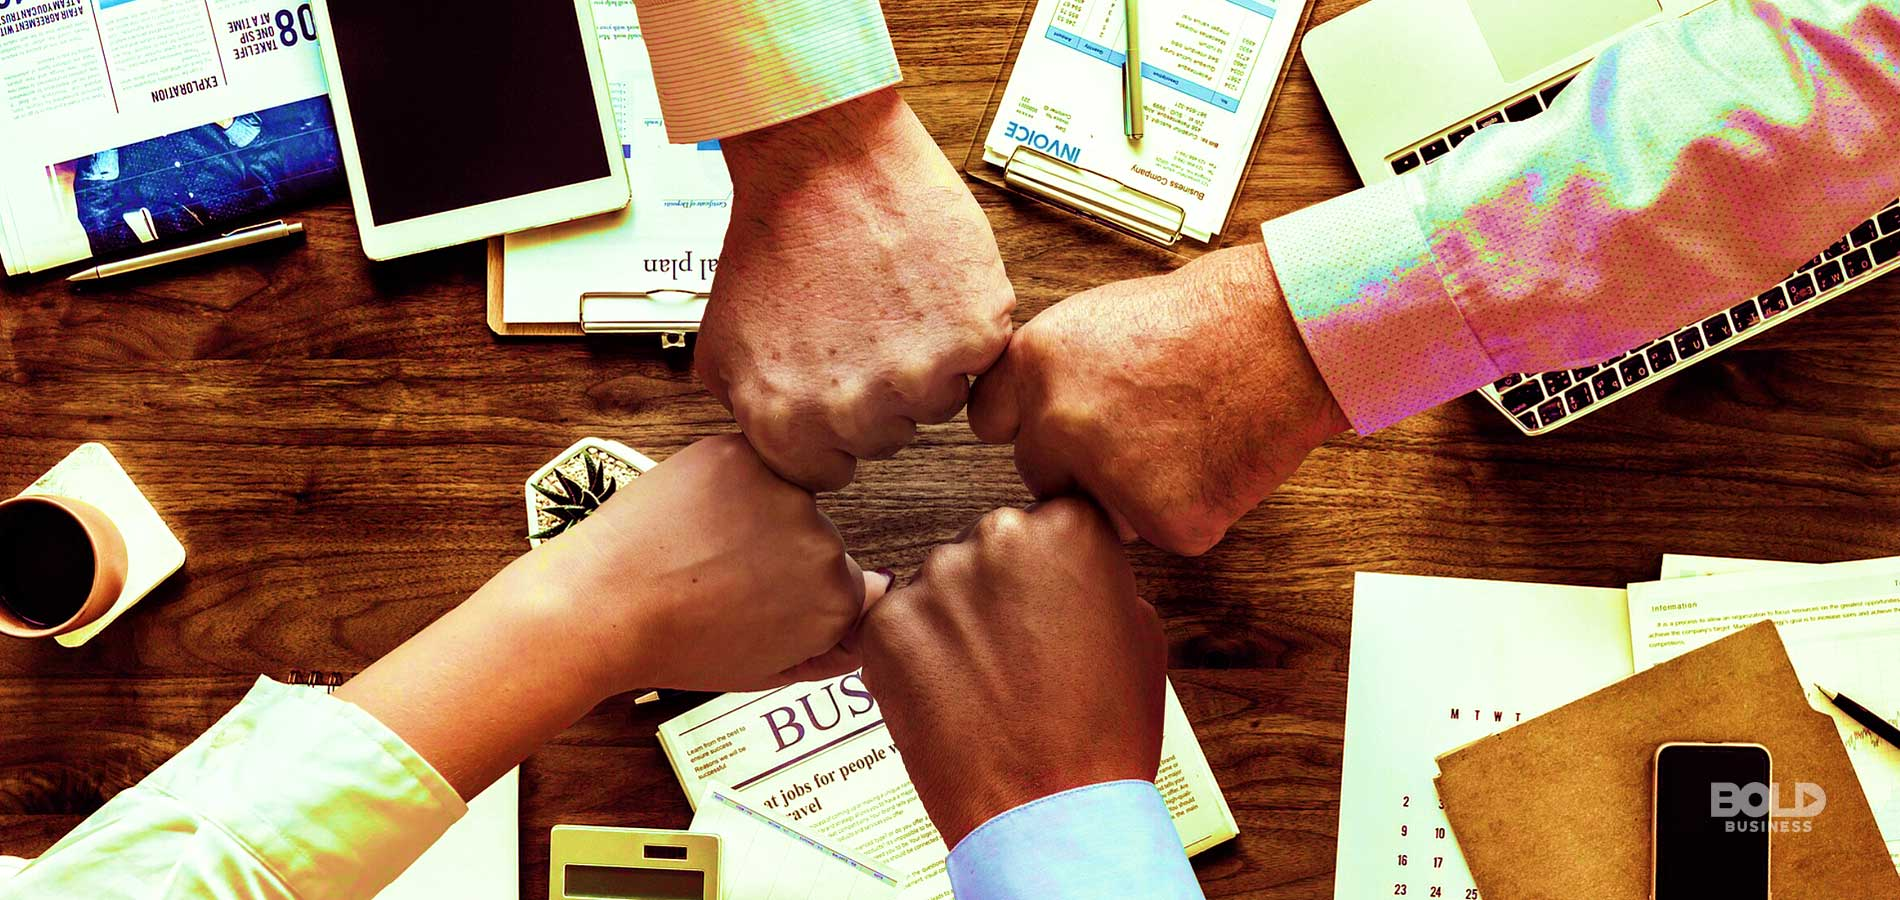 a photo of four hands making a fist bump on top of a table full of documents and office materials amidst the rise of top chief marketing officers in the world